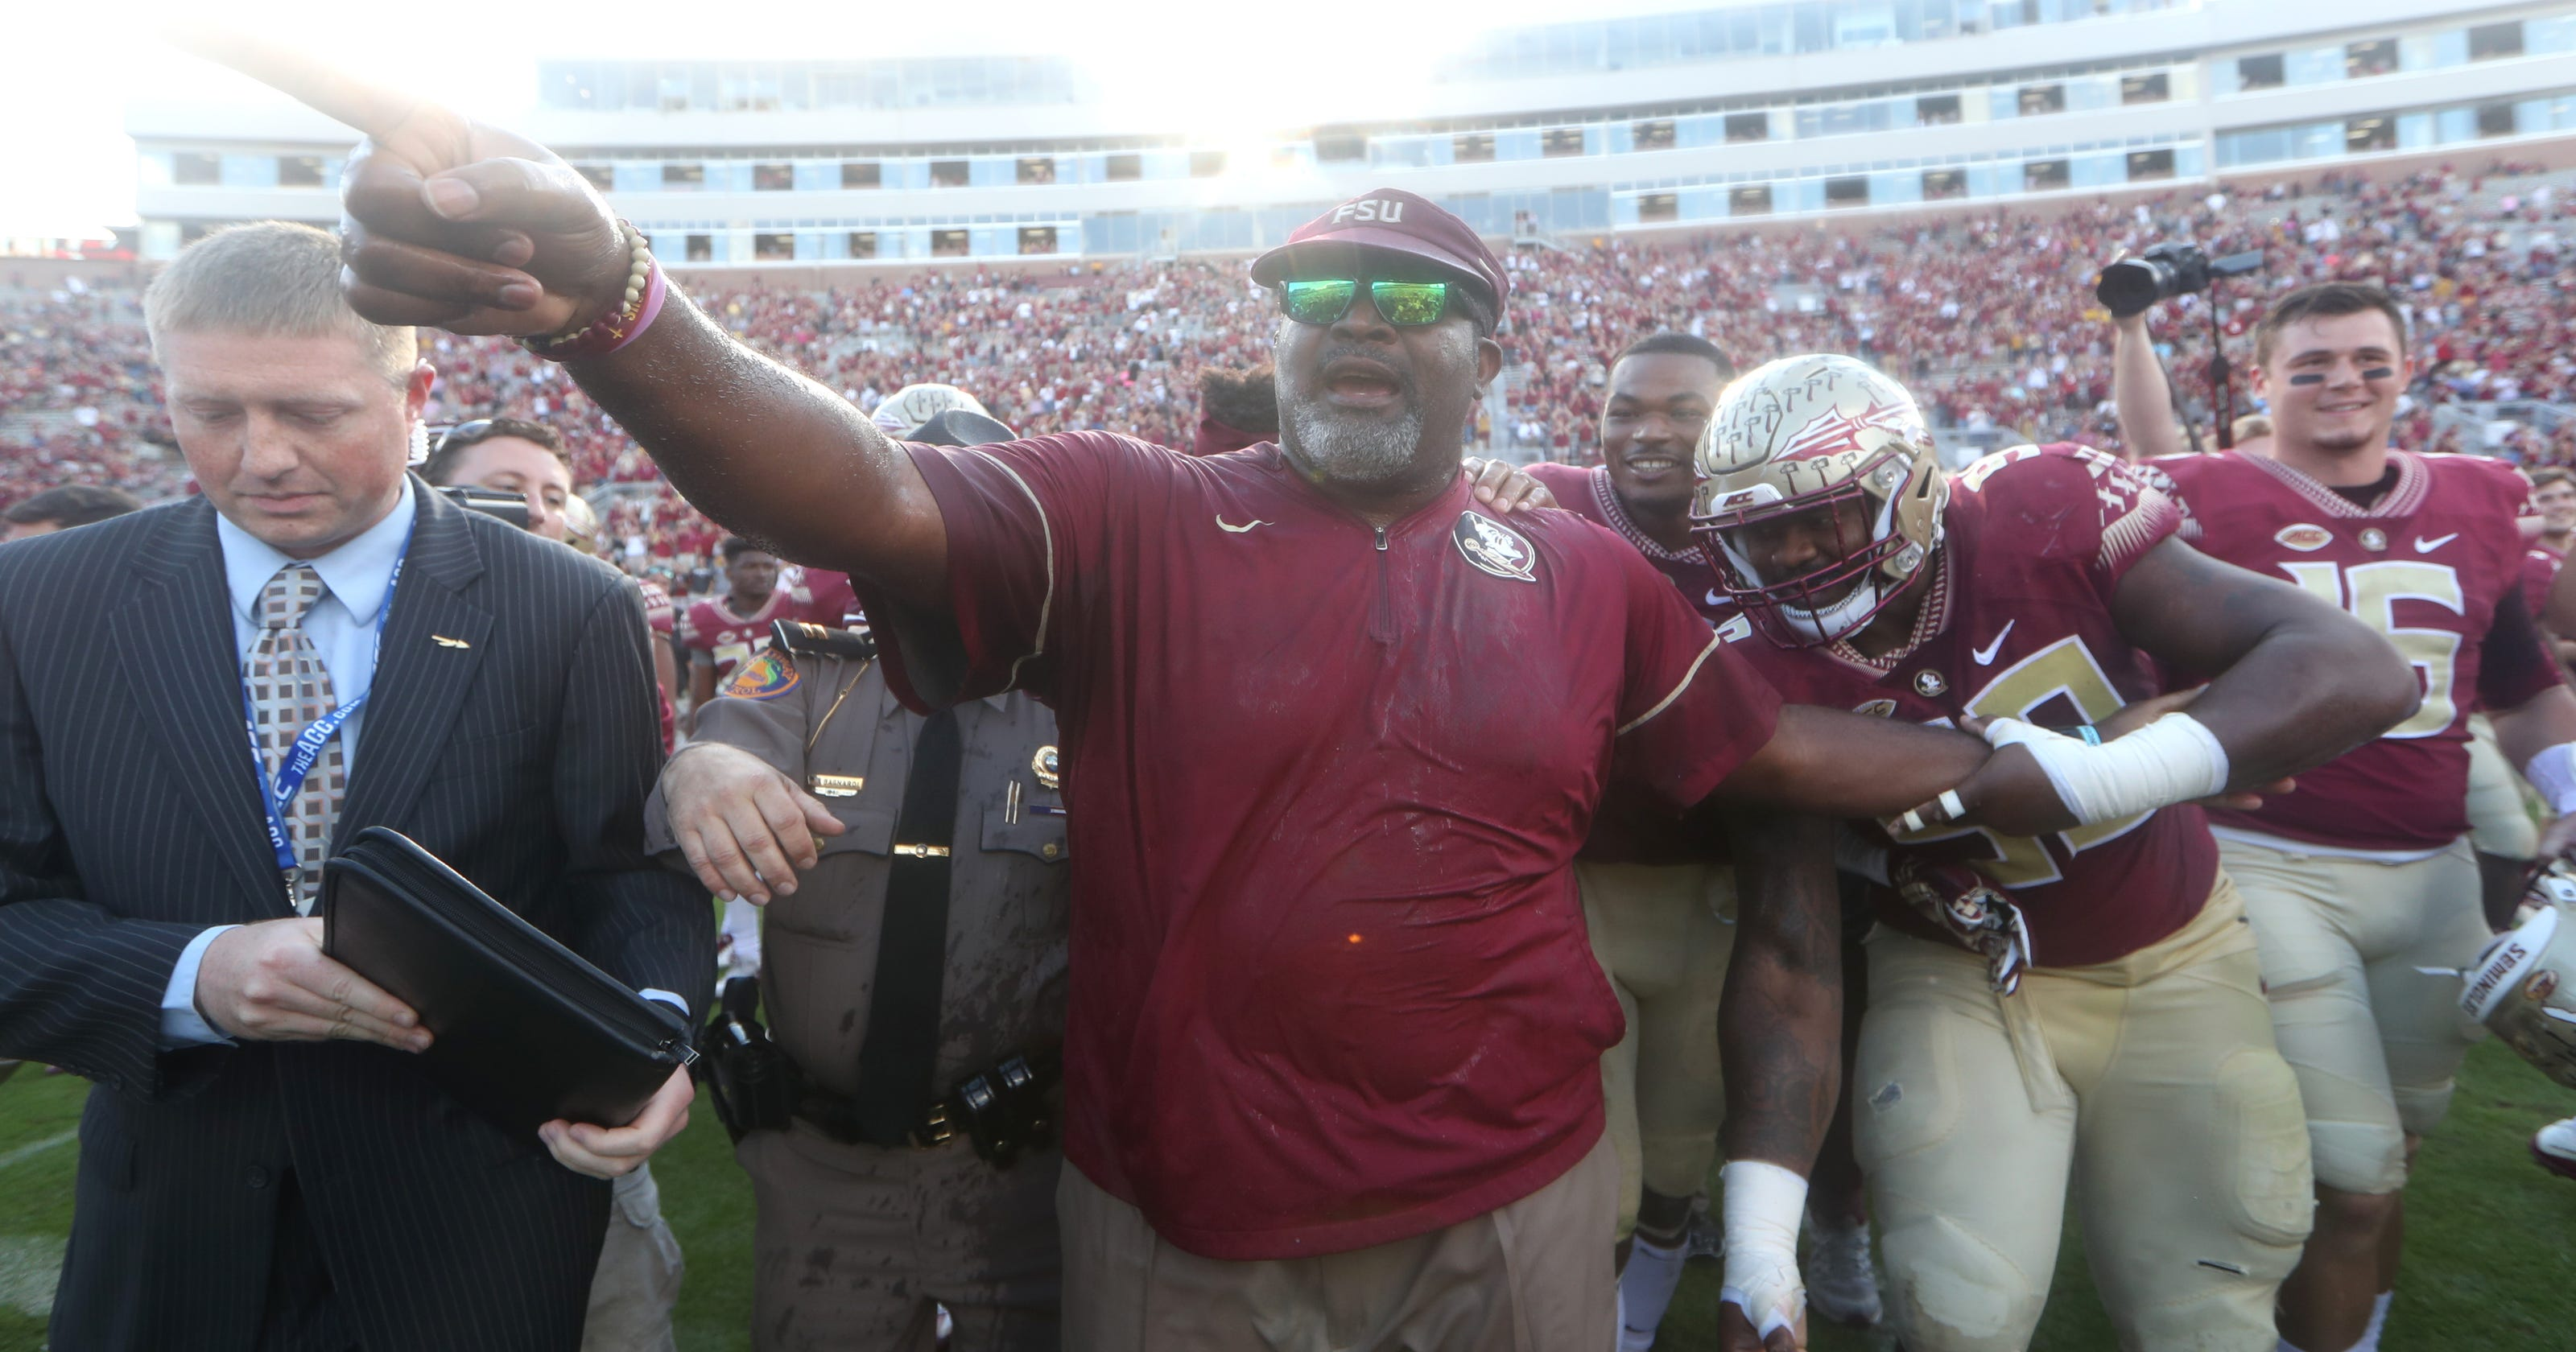 FSU interim coach Odell Haggins   We re going to play Florida State  football  965e6824a